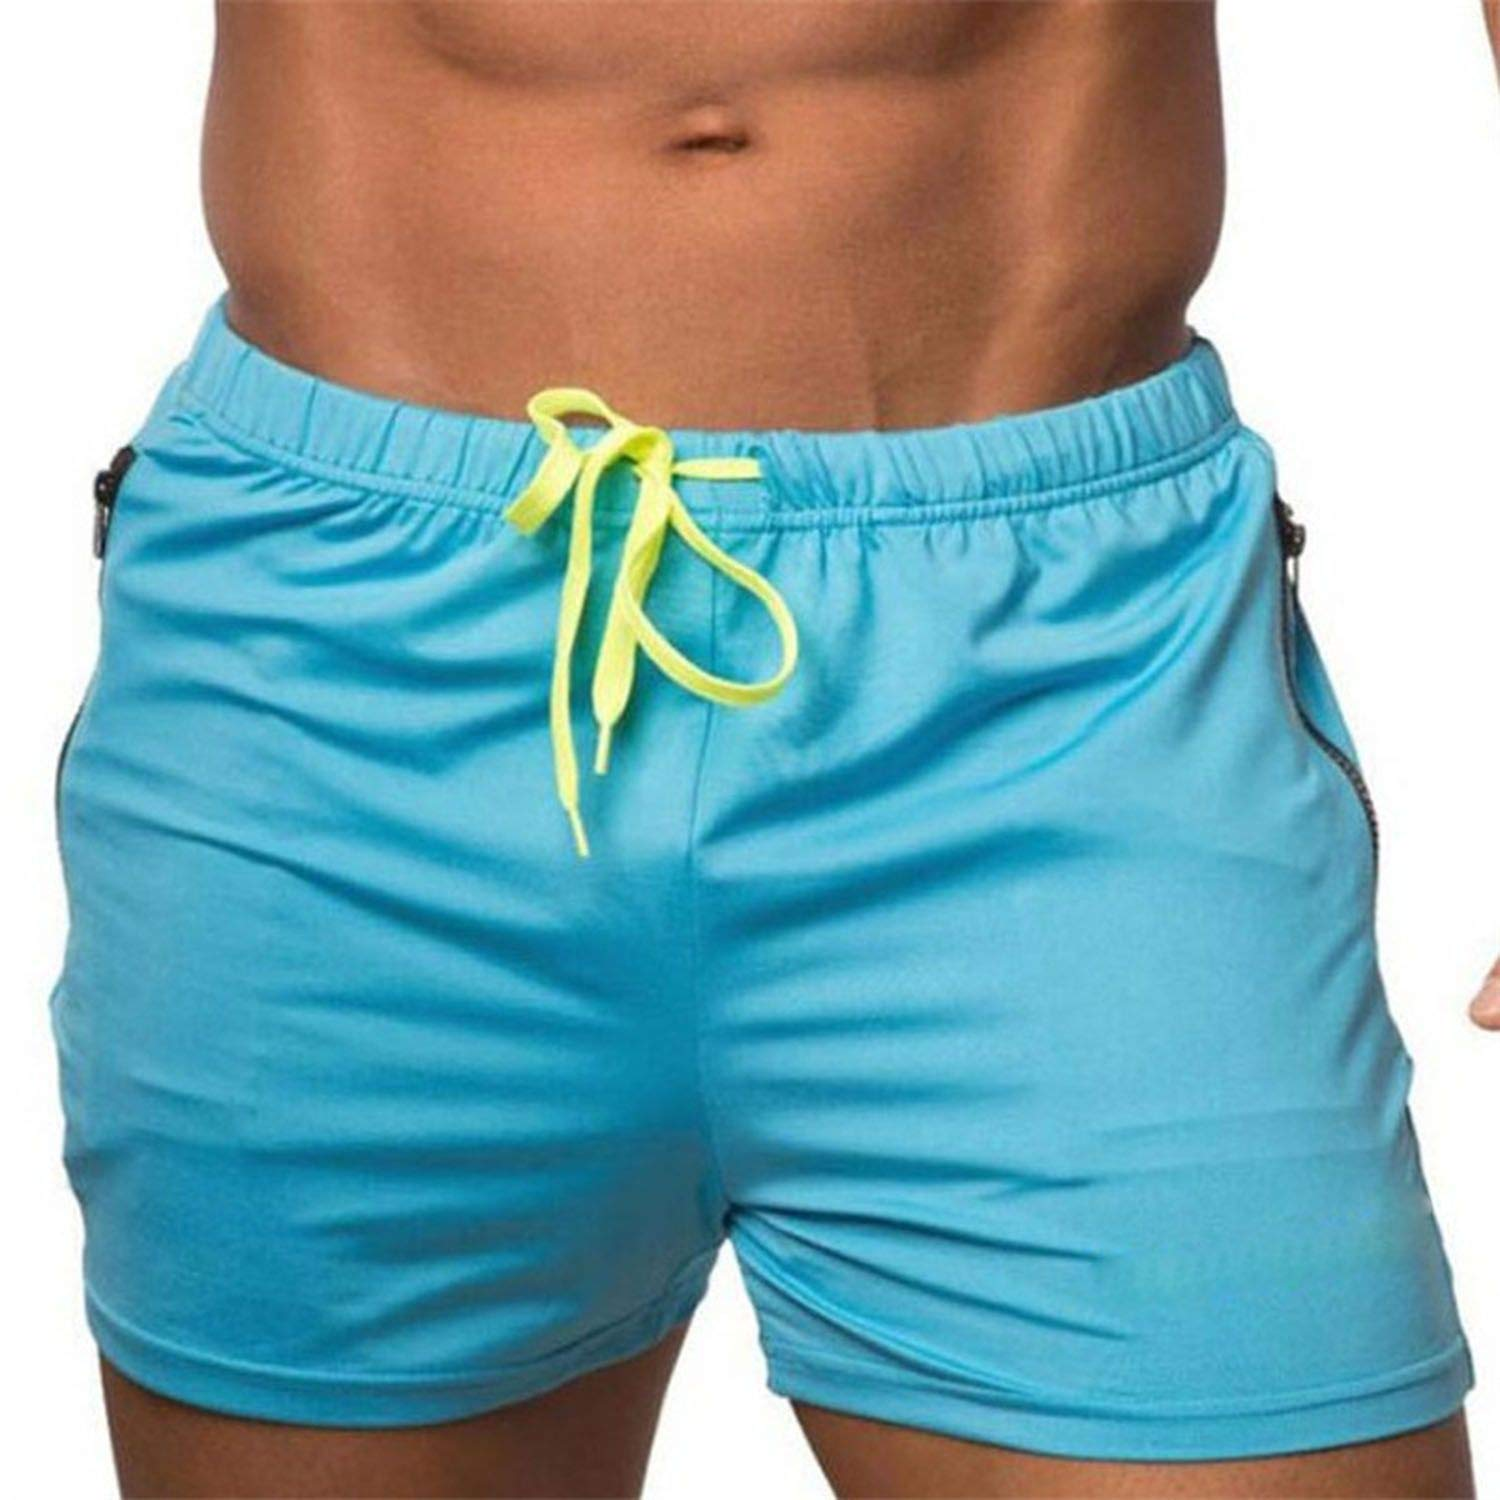 haode Fashionable Vigor Fitness Territory Sports Shorts Mens Summer Fast Dry Fitness Pants Mens Swimming Trunks Beach Pants